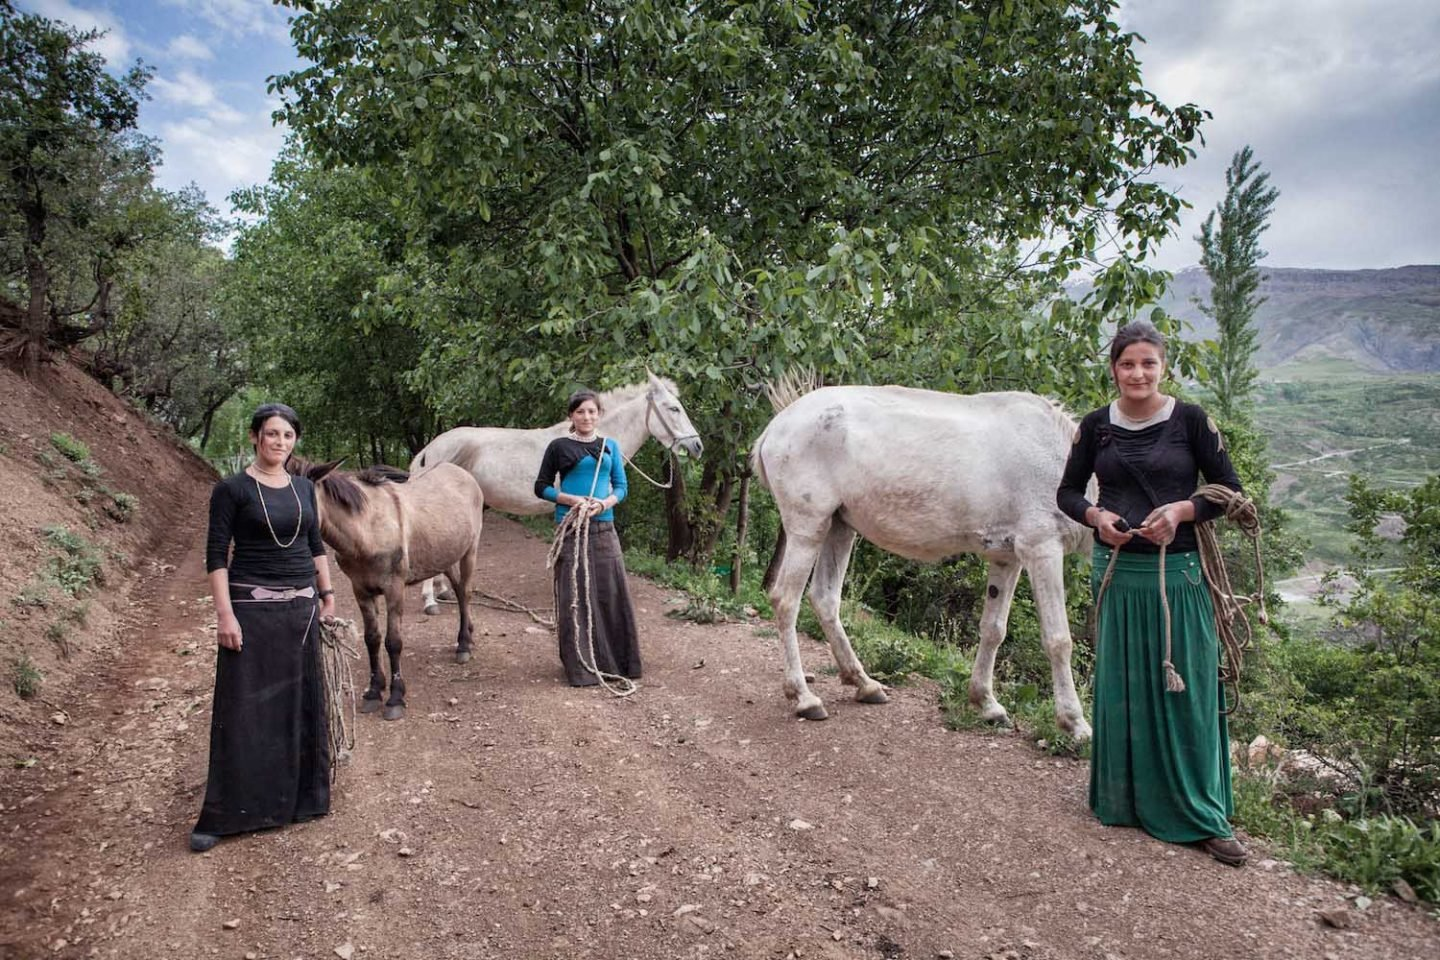 The Sisters and Horses.